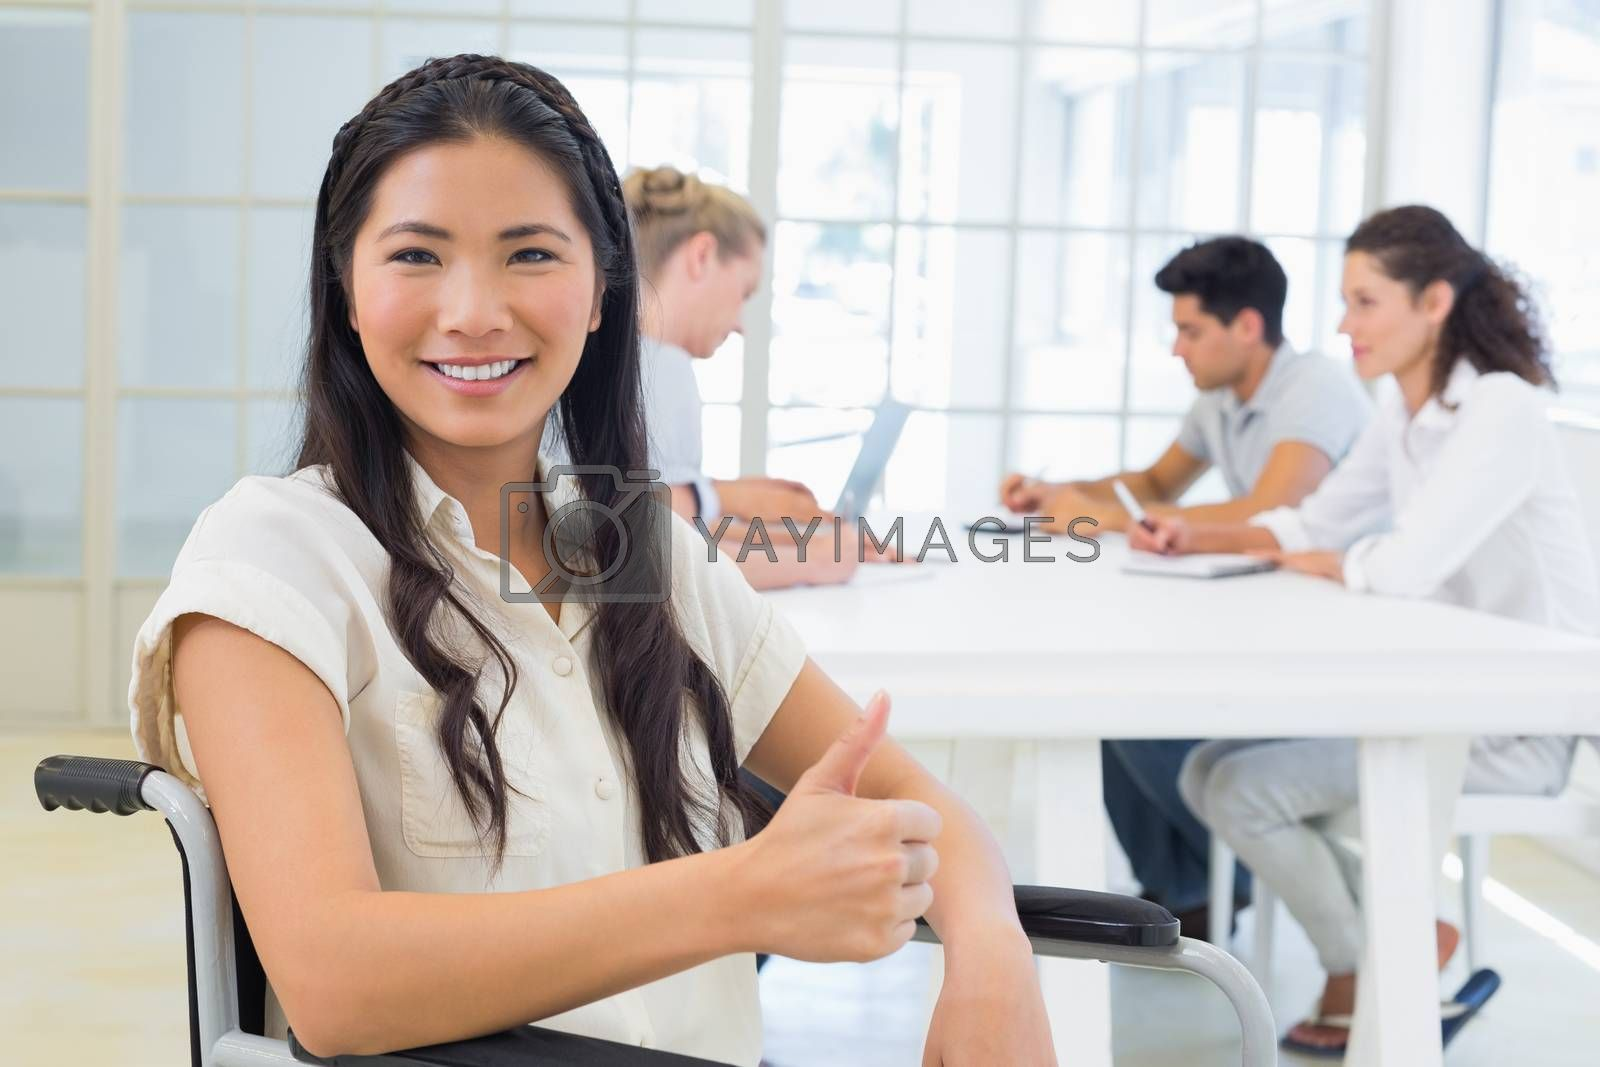 Royalty free image of Casual businesswoman in wheelchair smiling at camera giving thumbs up by Wavebreakmedia